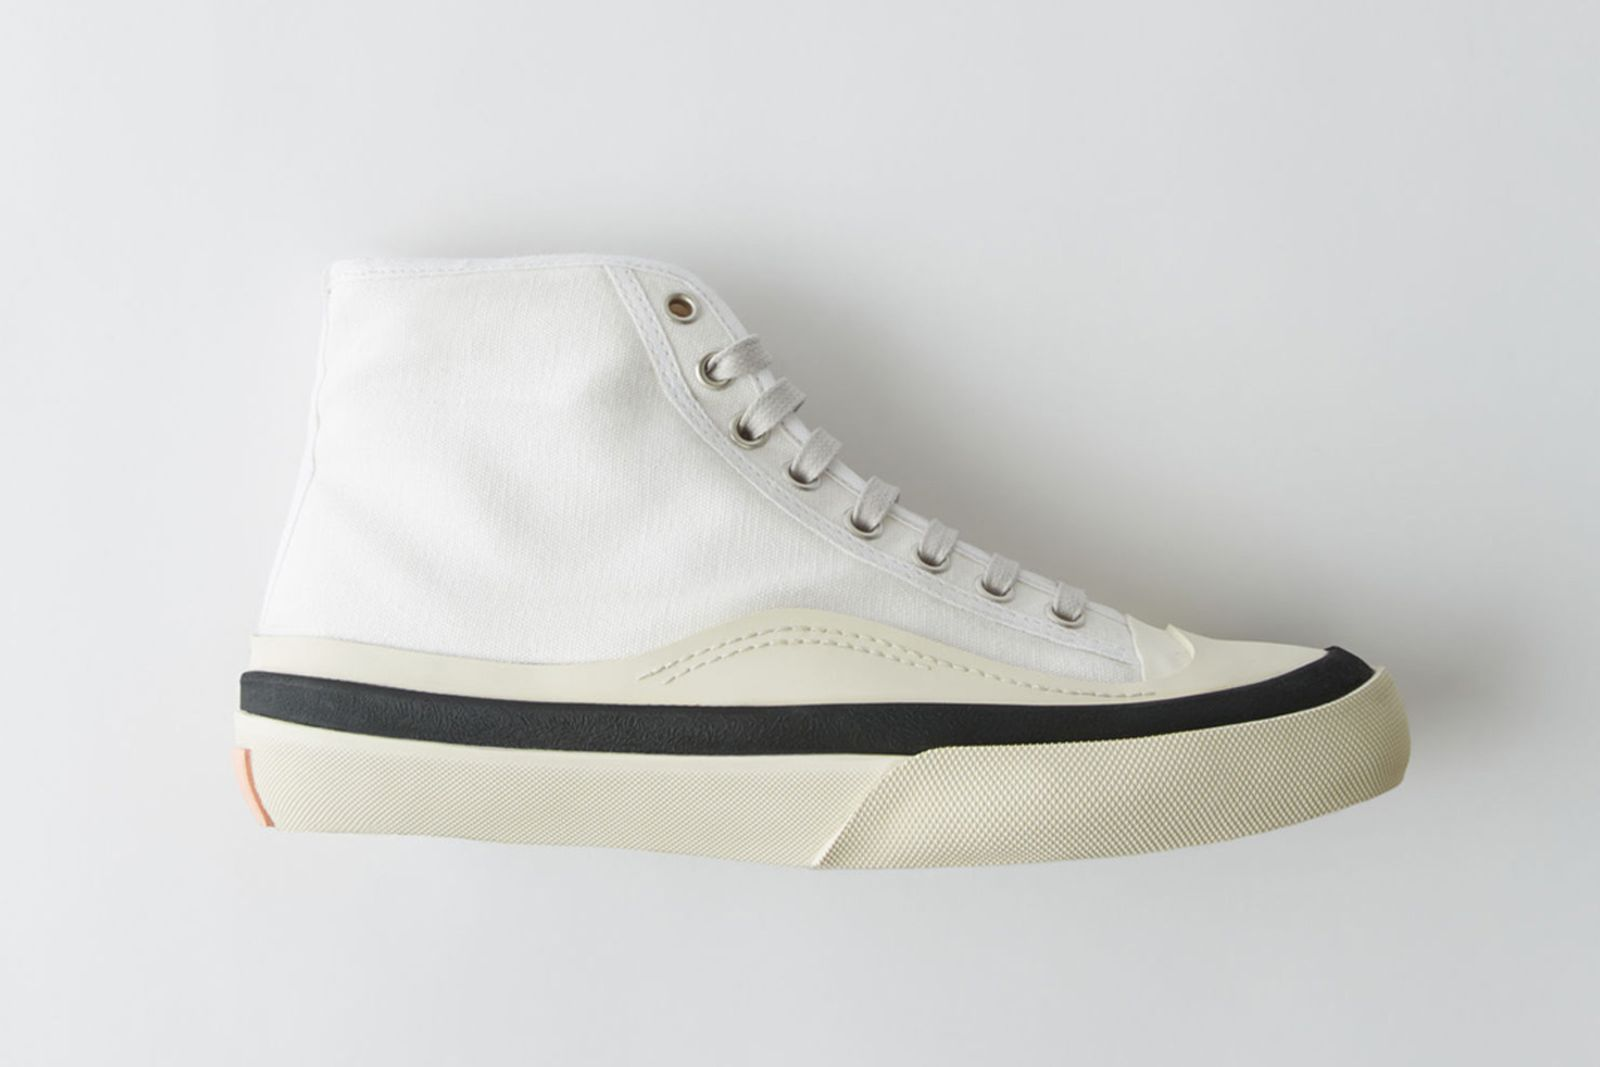 acne studios canvas sneakers release date price